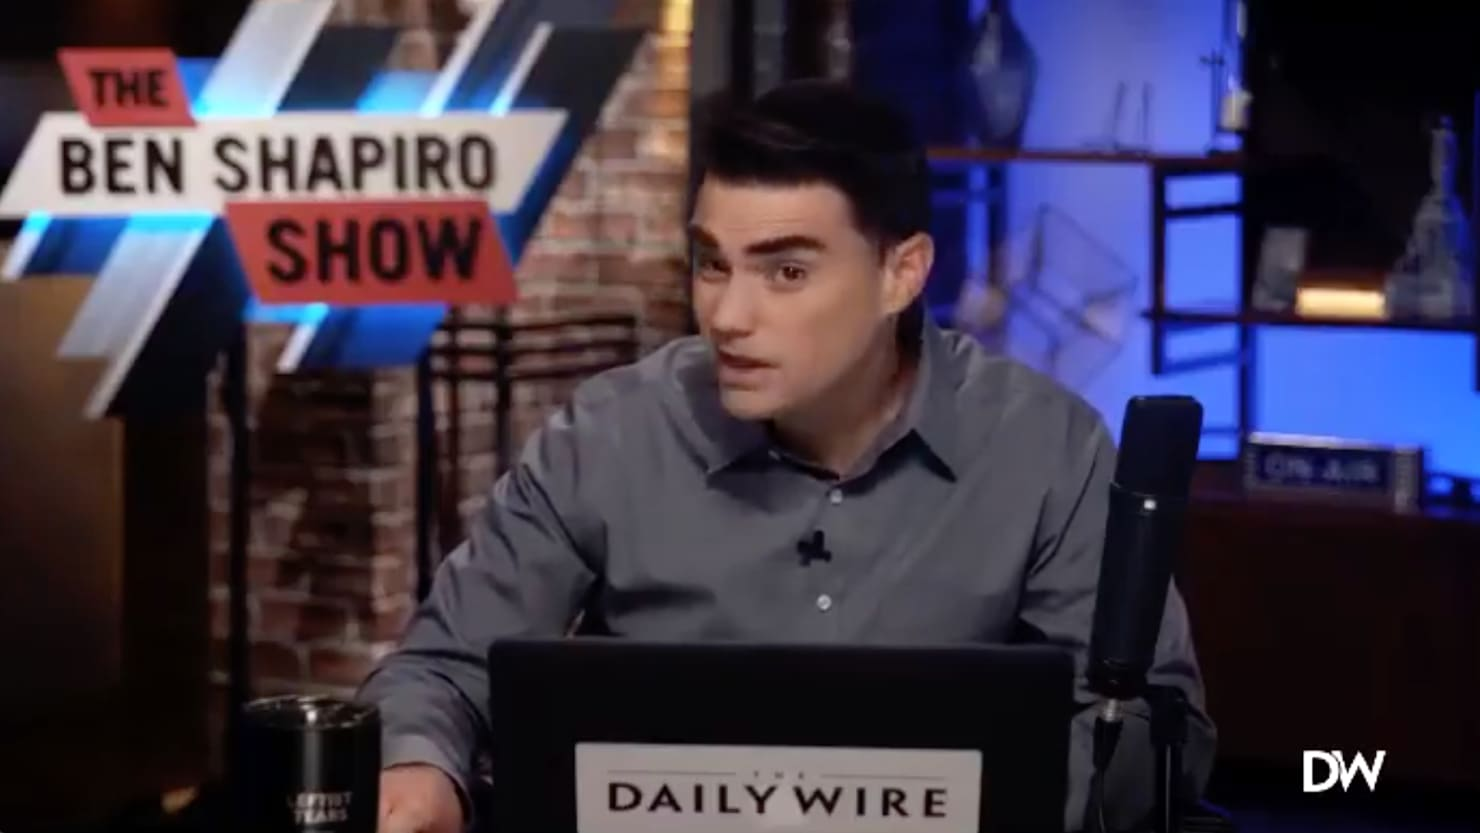 Ben Shapiro Whines There's Not Enough Men in Biden's White House Comms Team